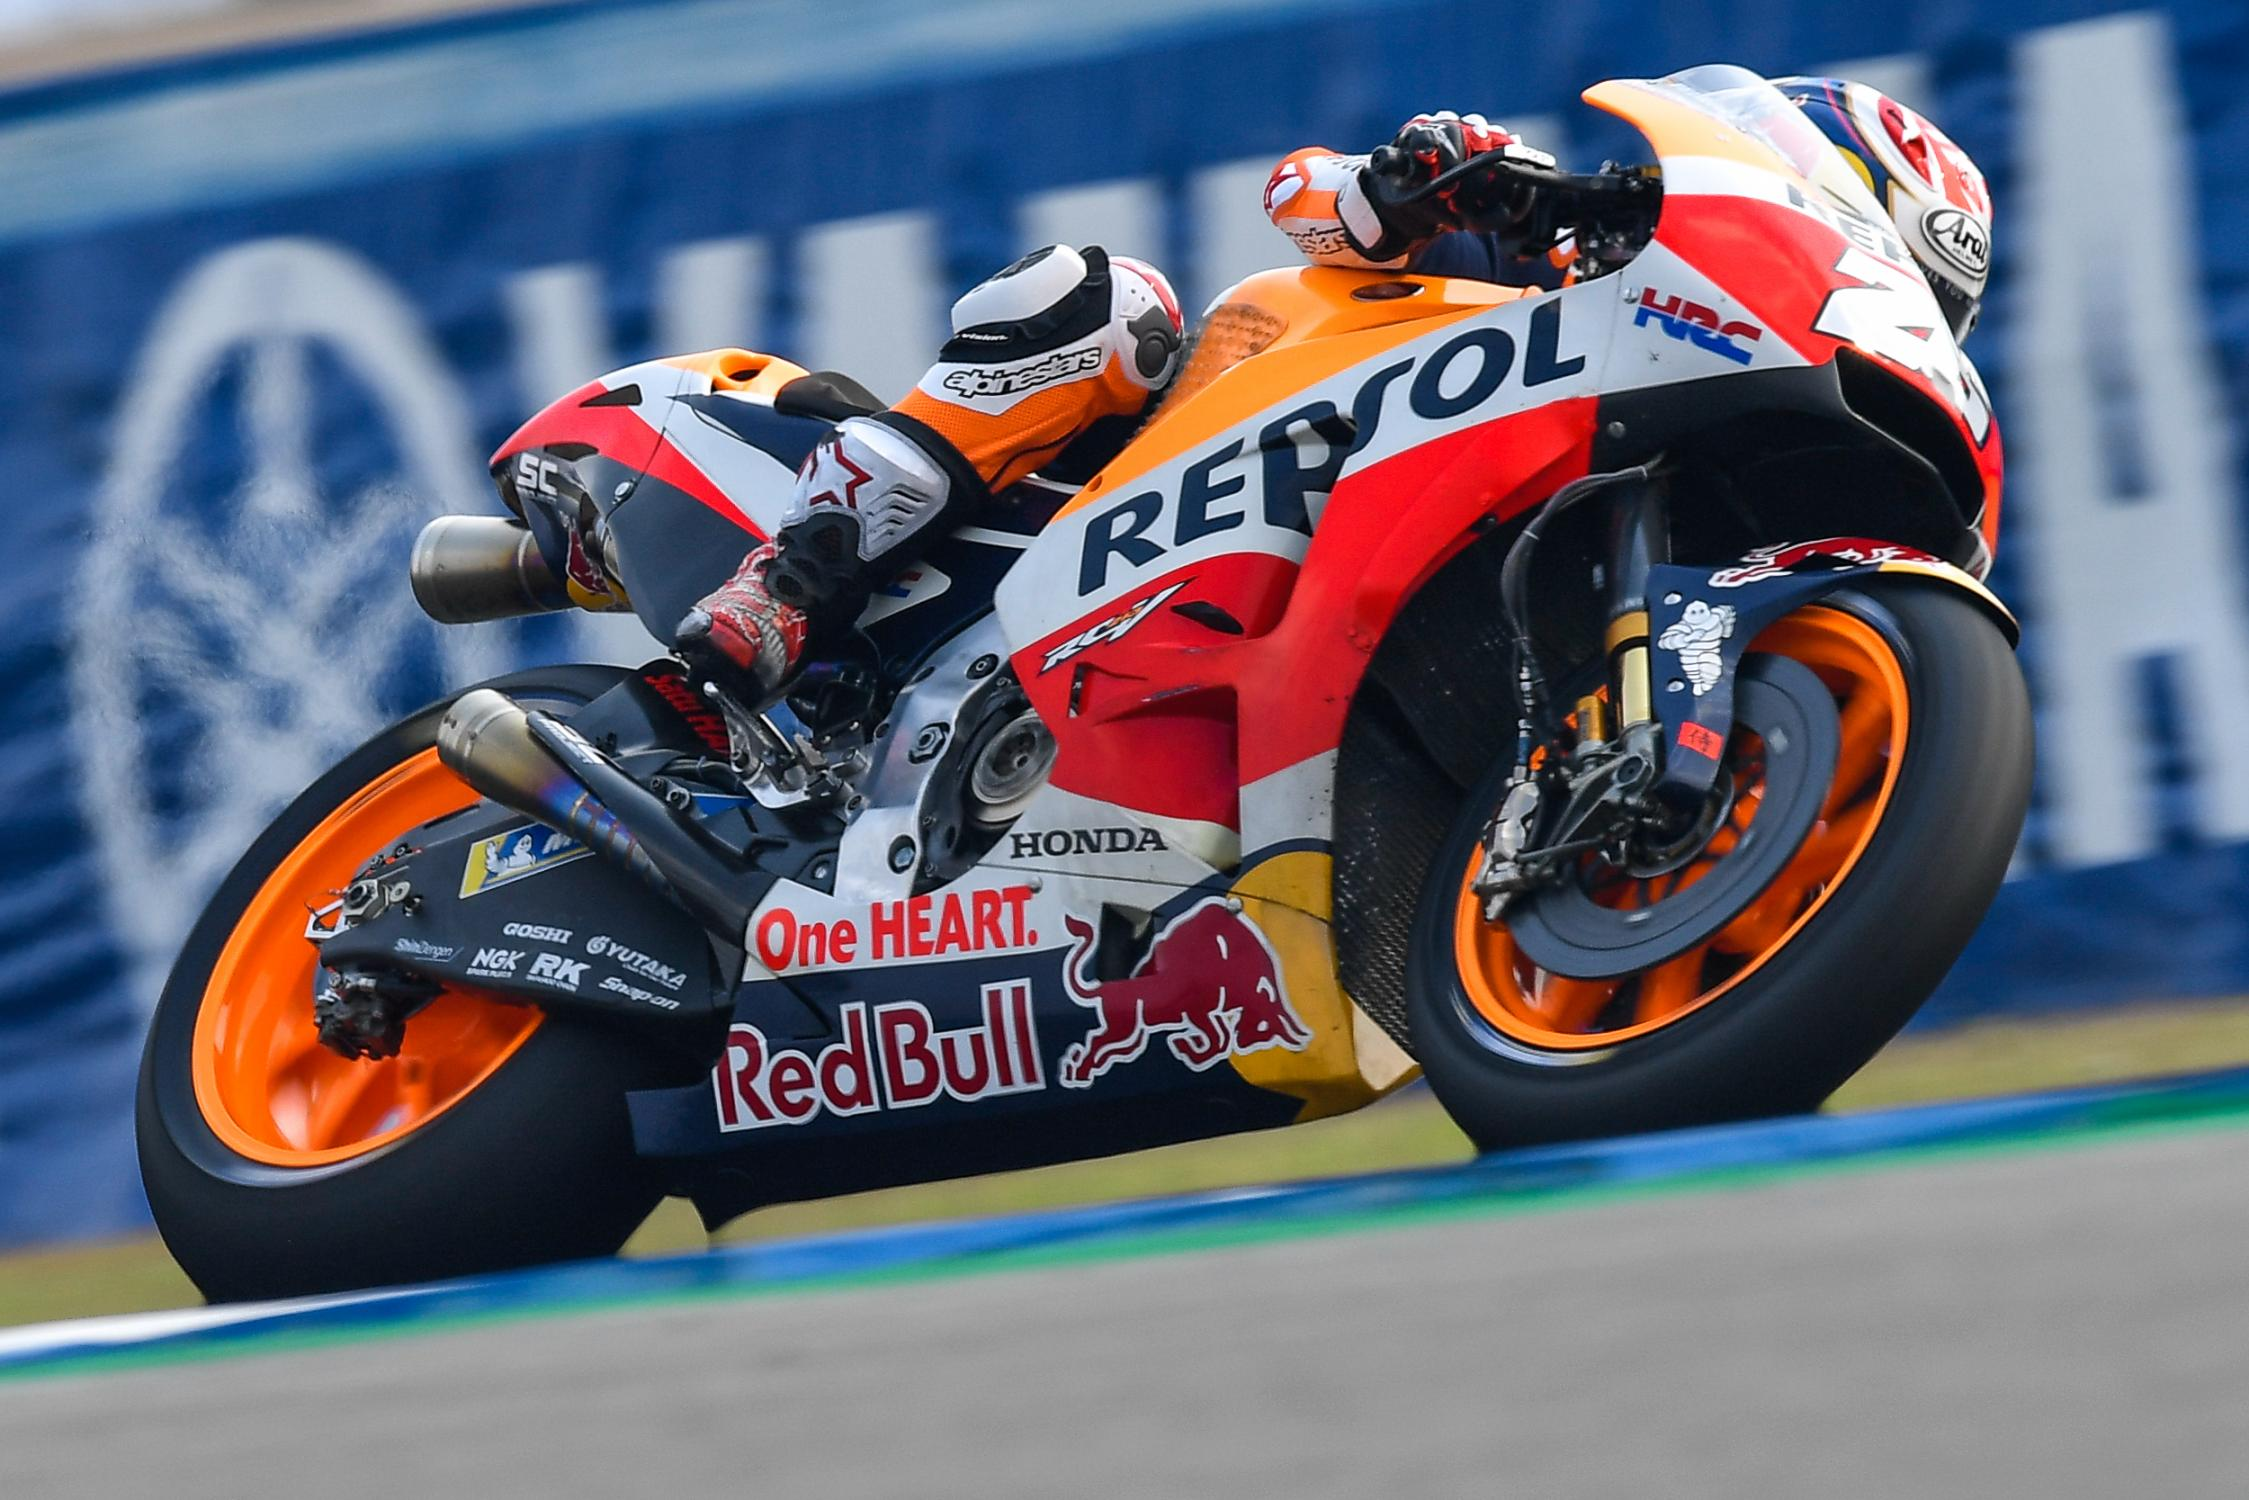 26-dani-pedrosa-esp_ds52264.gallery_full_top_fullscreen.jpg